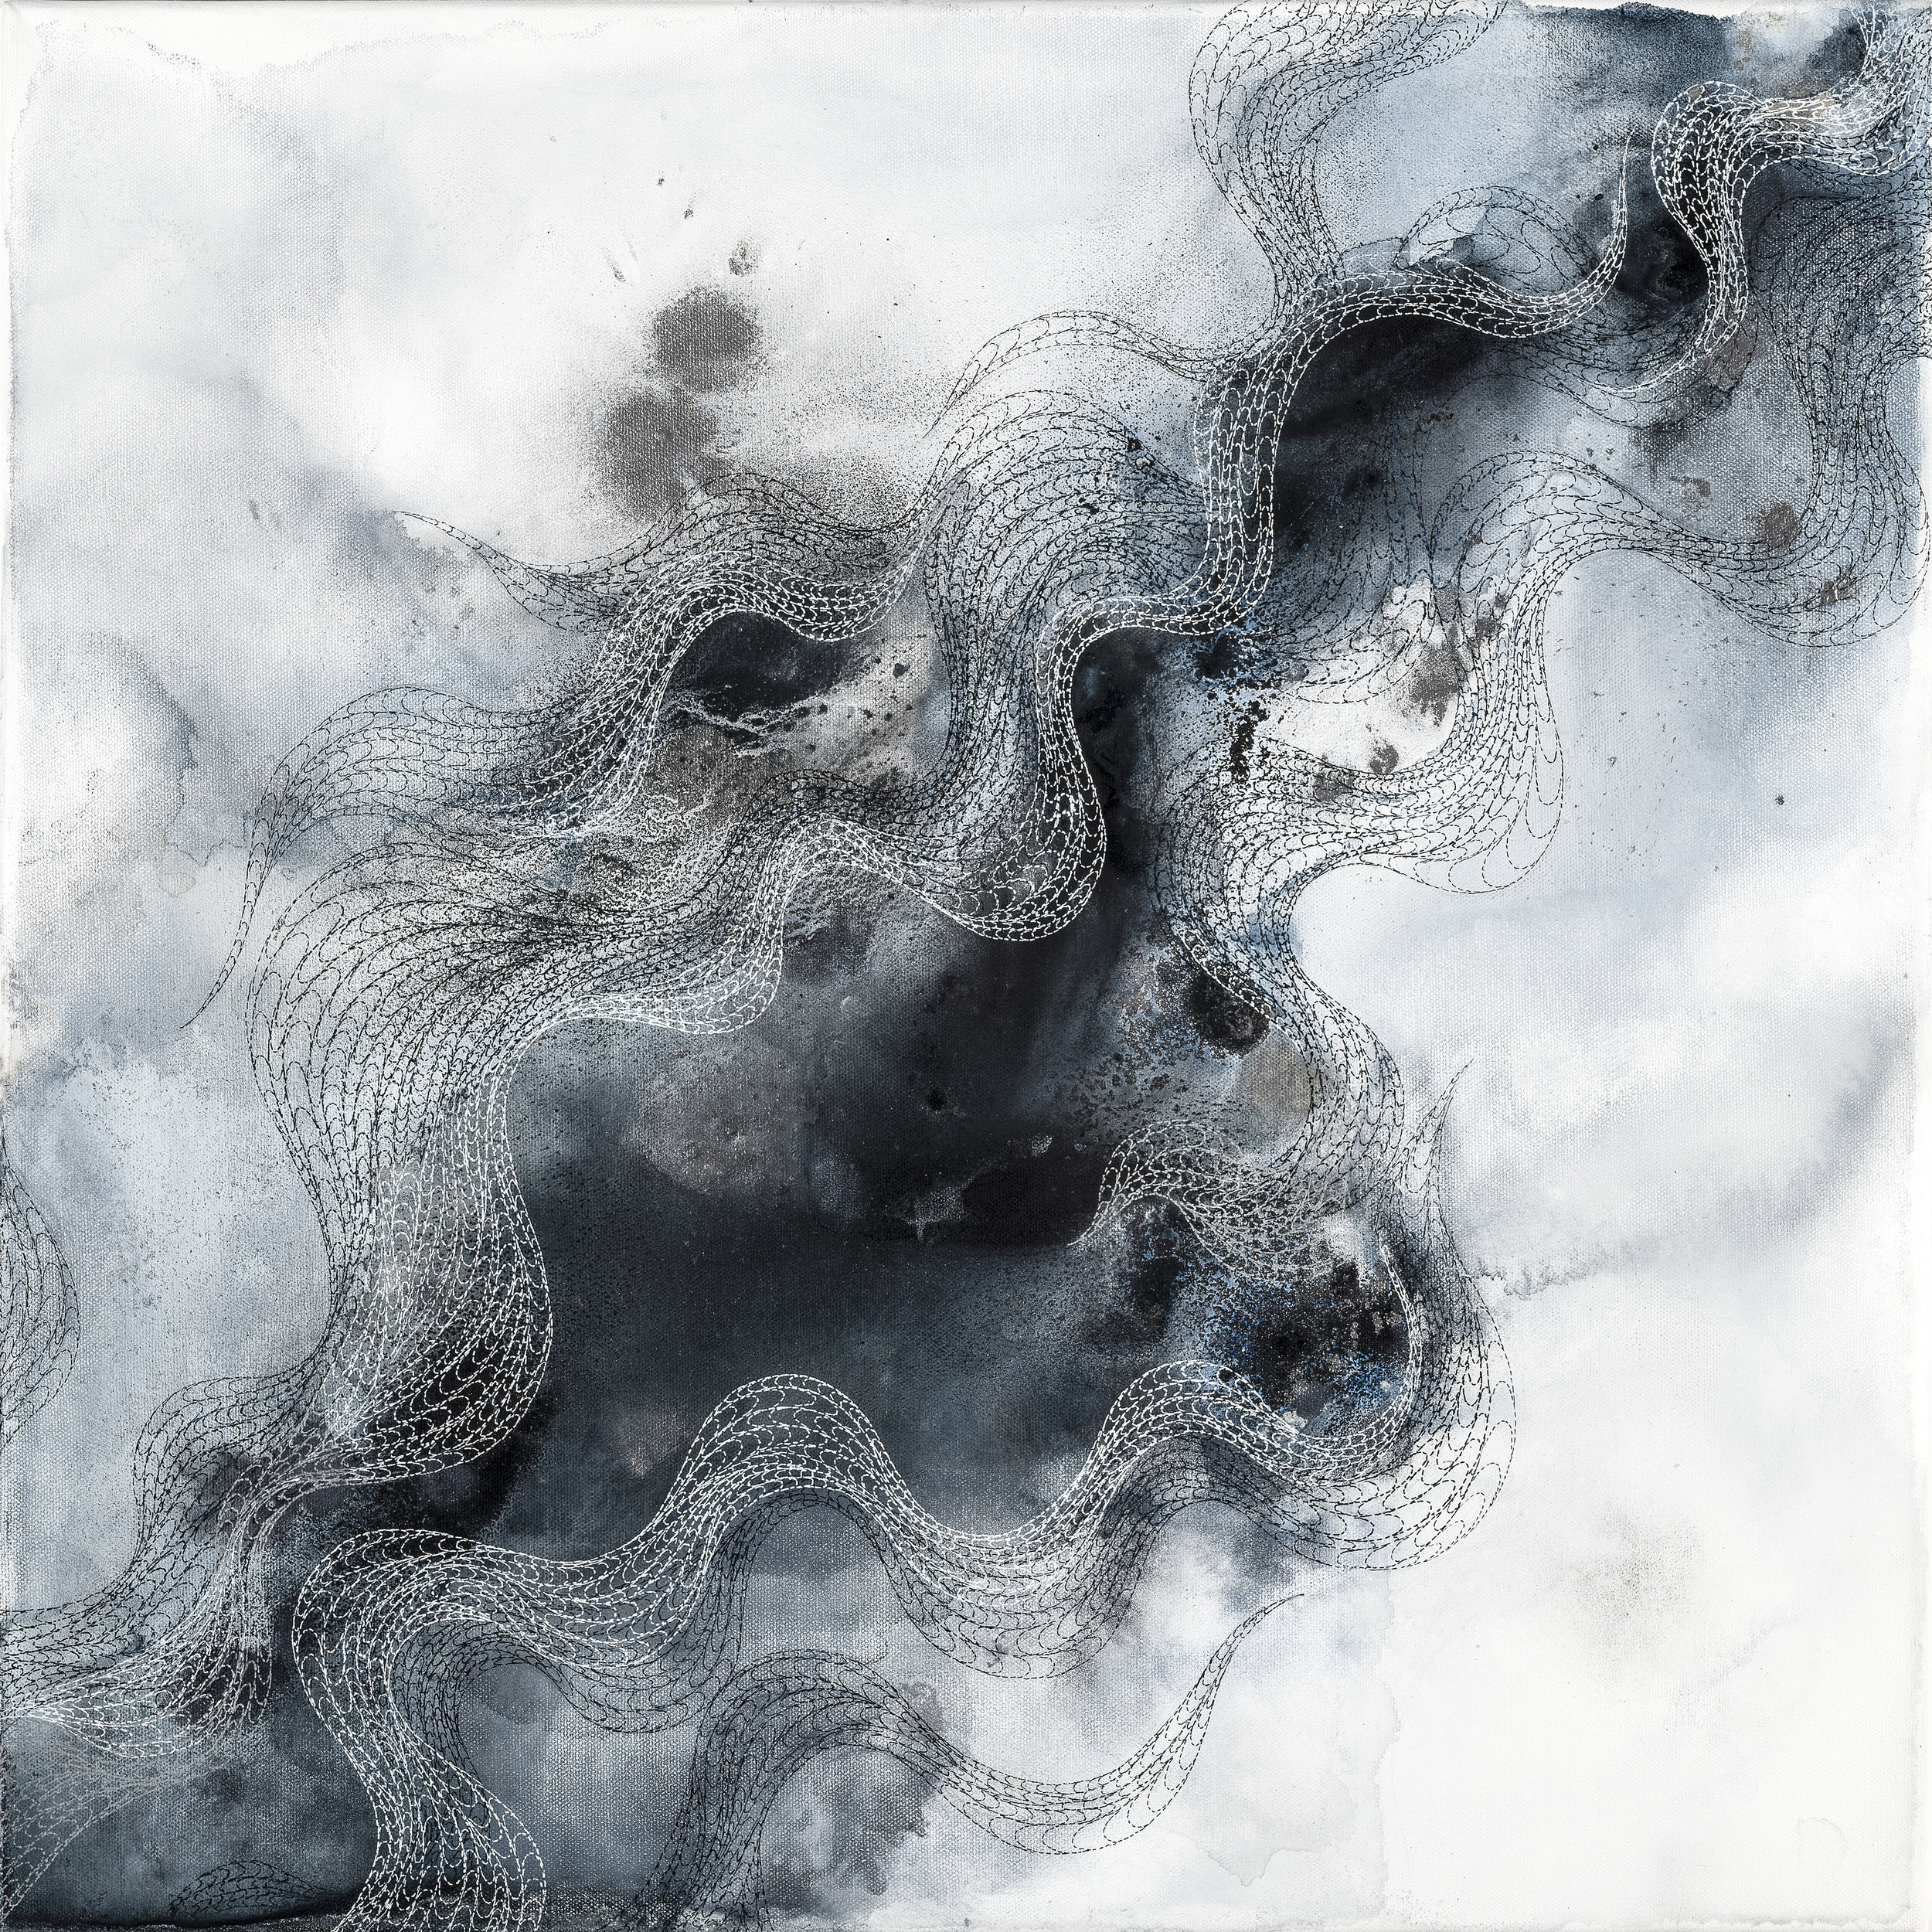 Cascade 04, ink, powder pigment on canvas, 24x24in., 2019